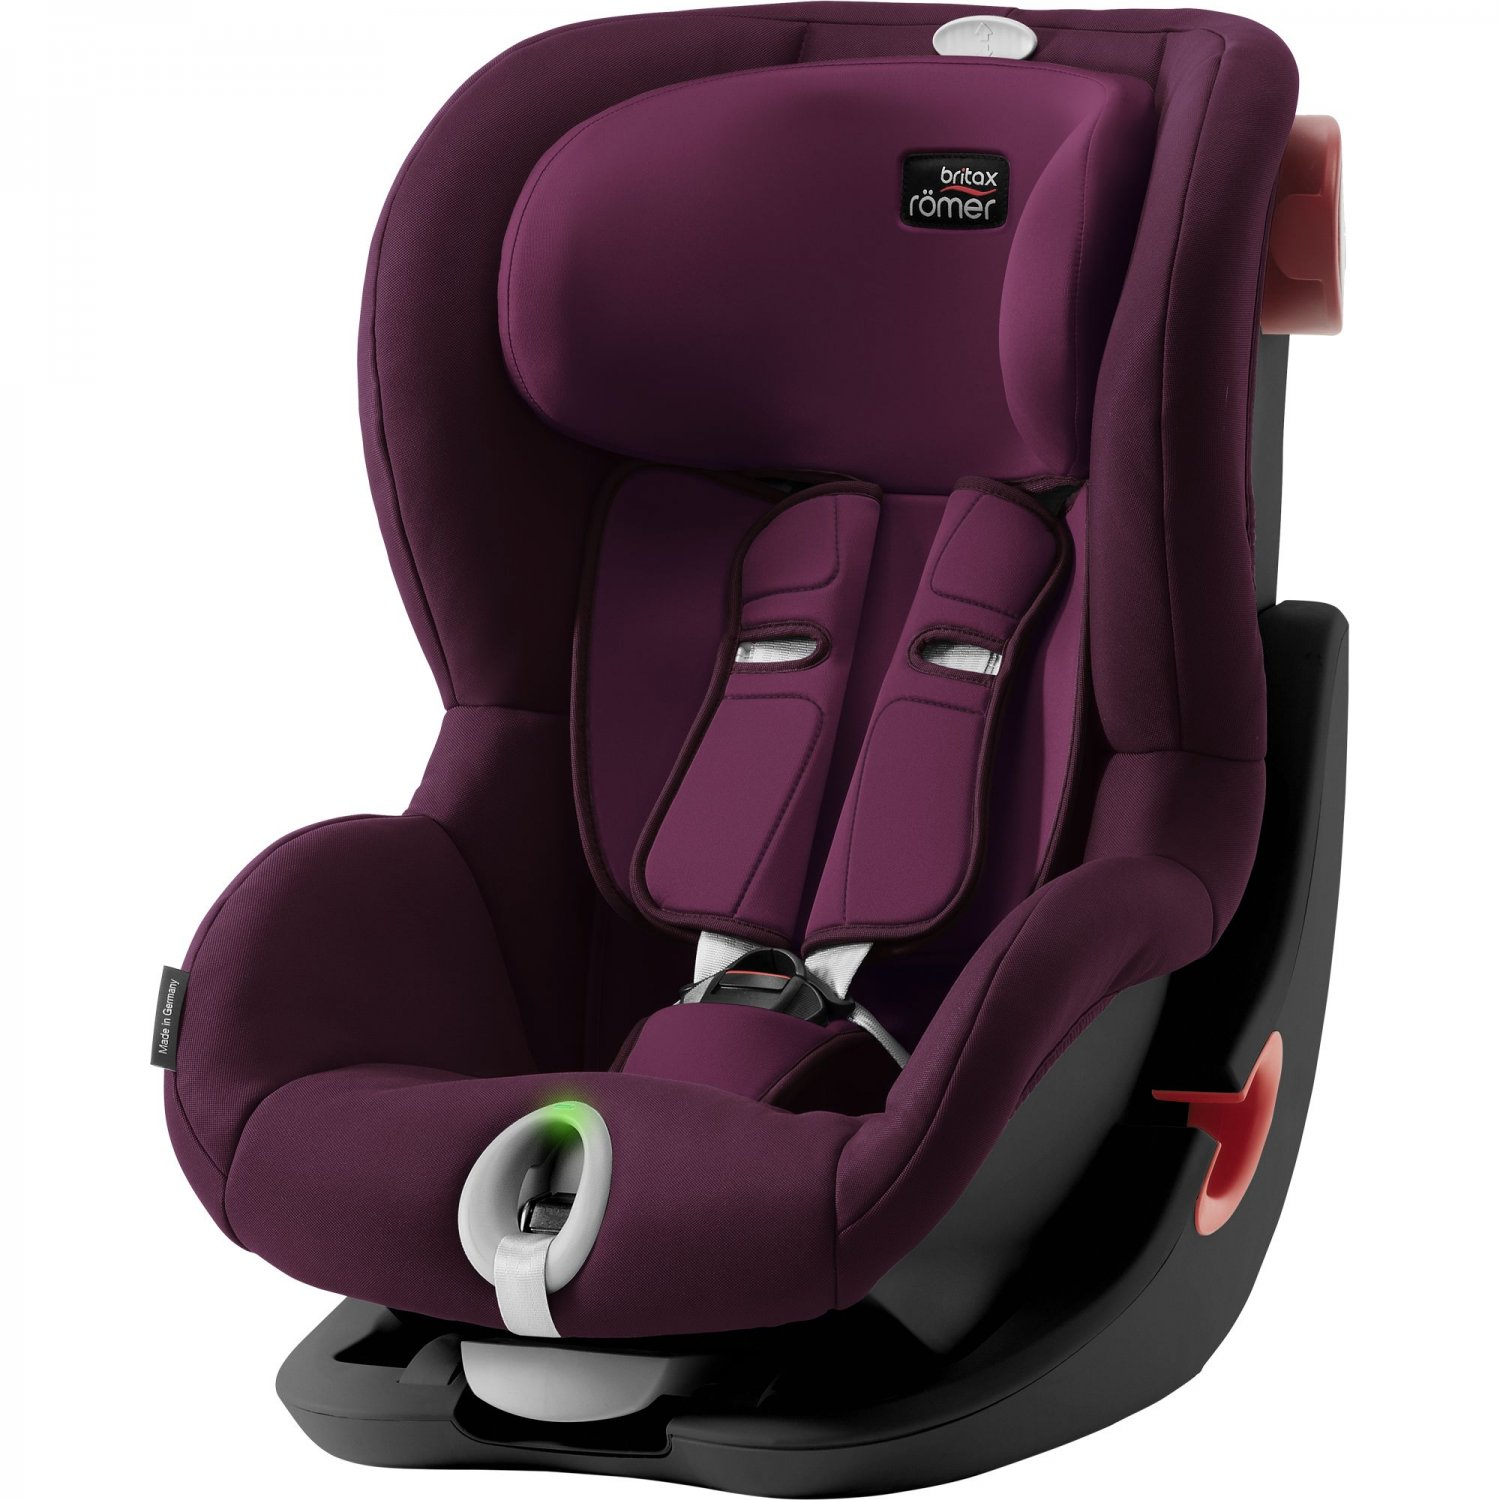 BLACK EDITION Burgundy Red Child Car Seat